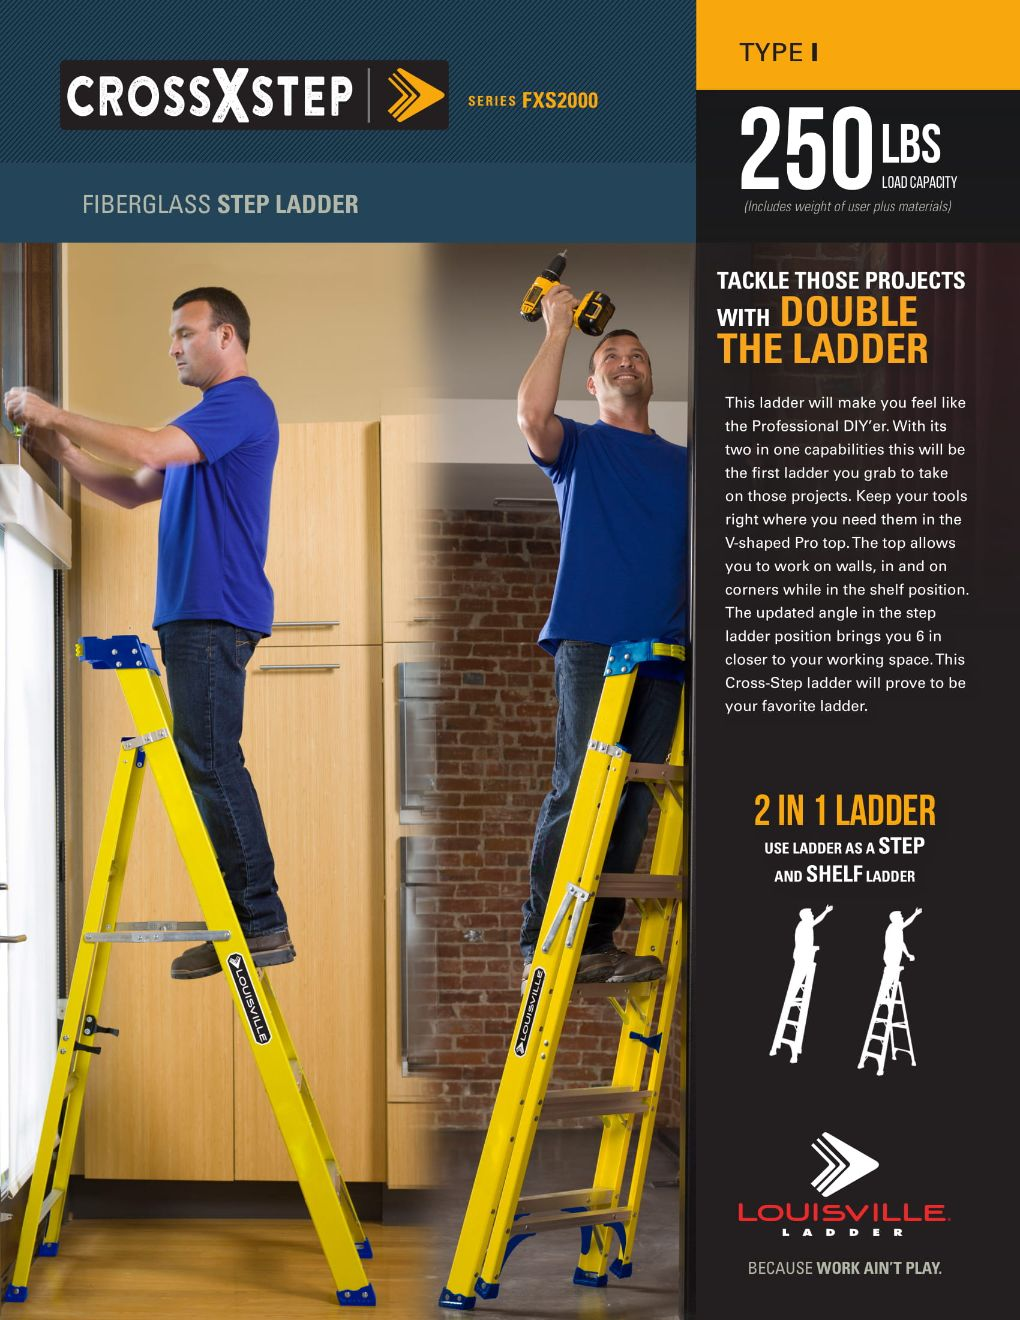 FXS2000 Cross Step Ladder Flyer and Spec Sheet Marketing Material Image